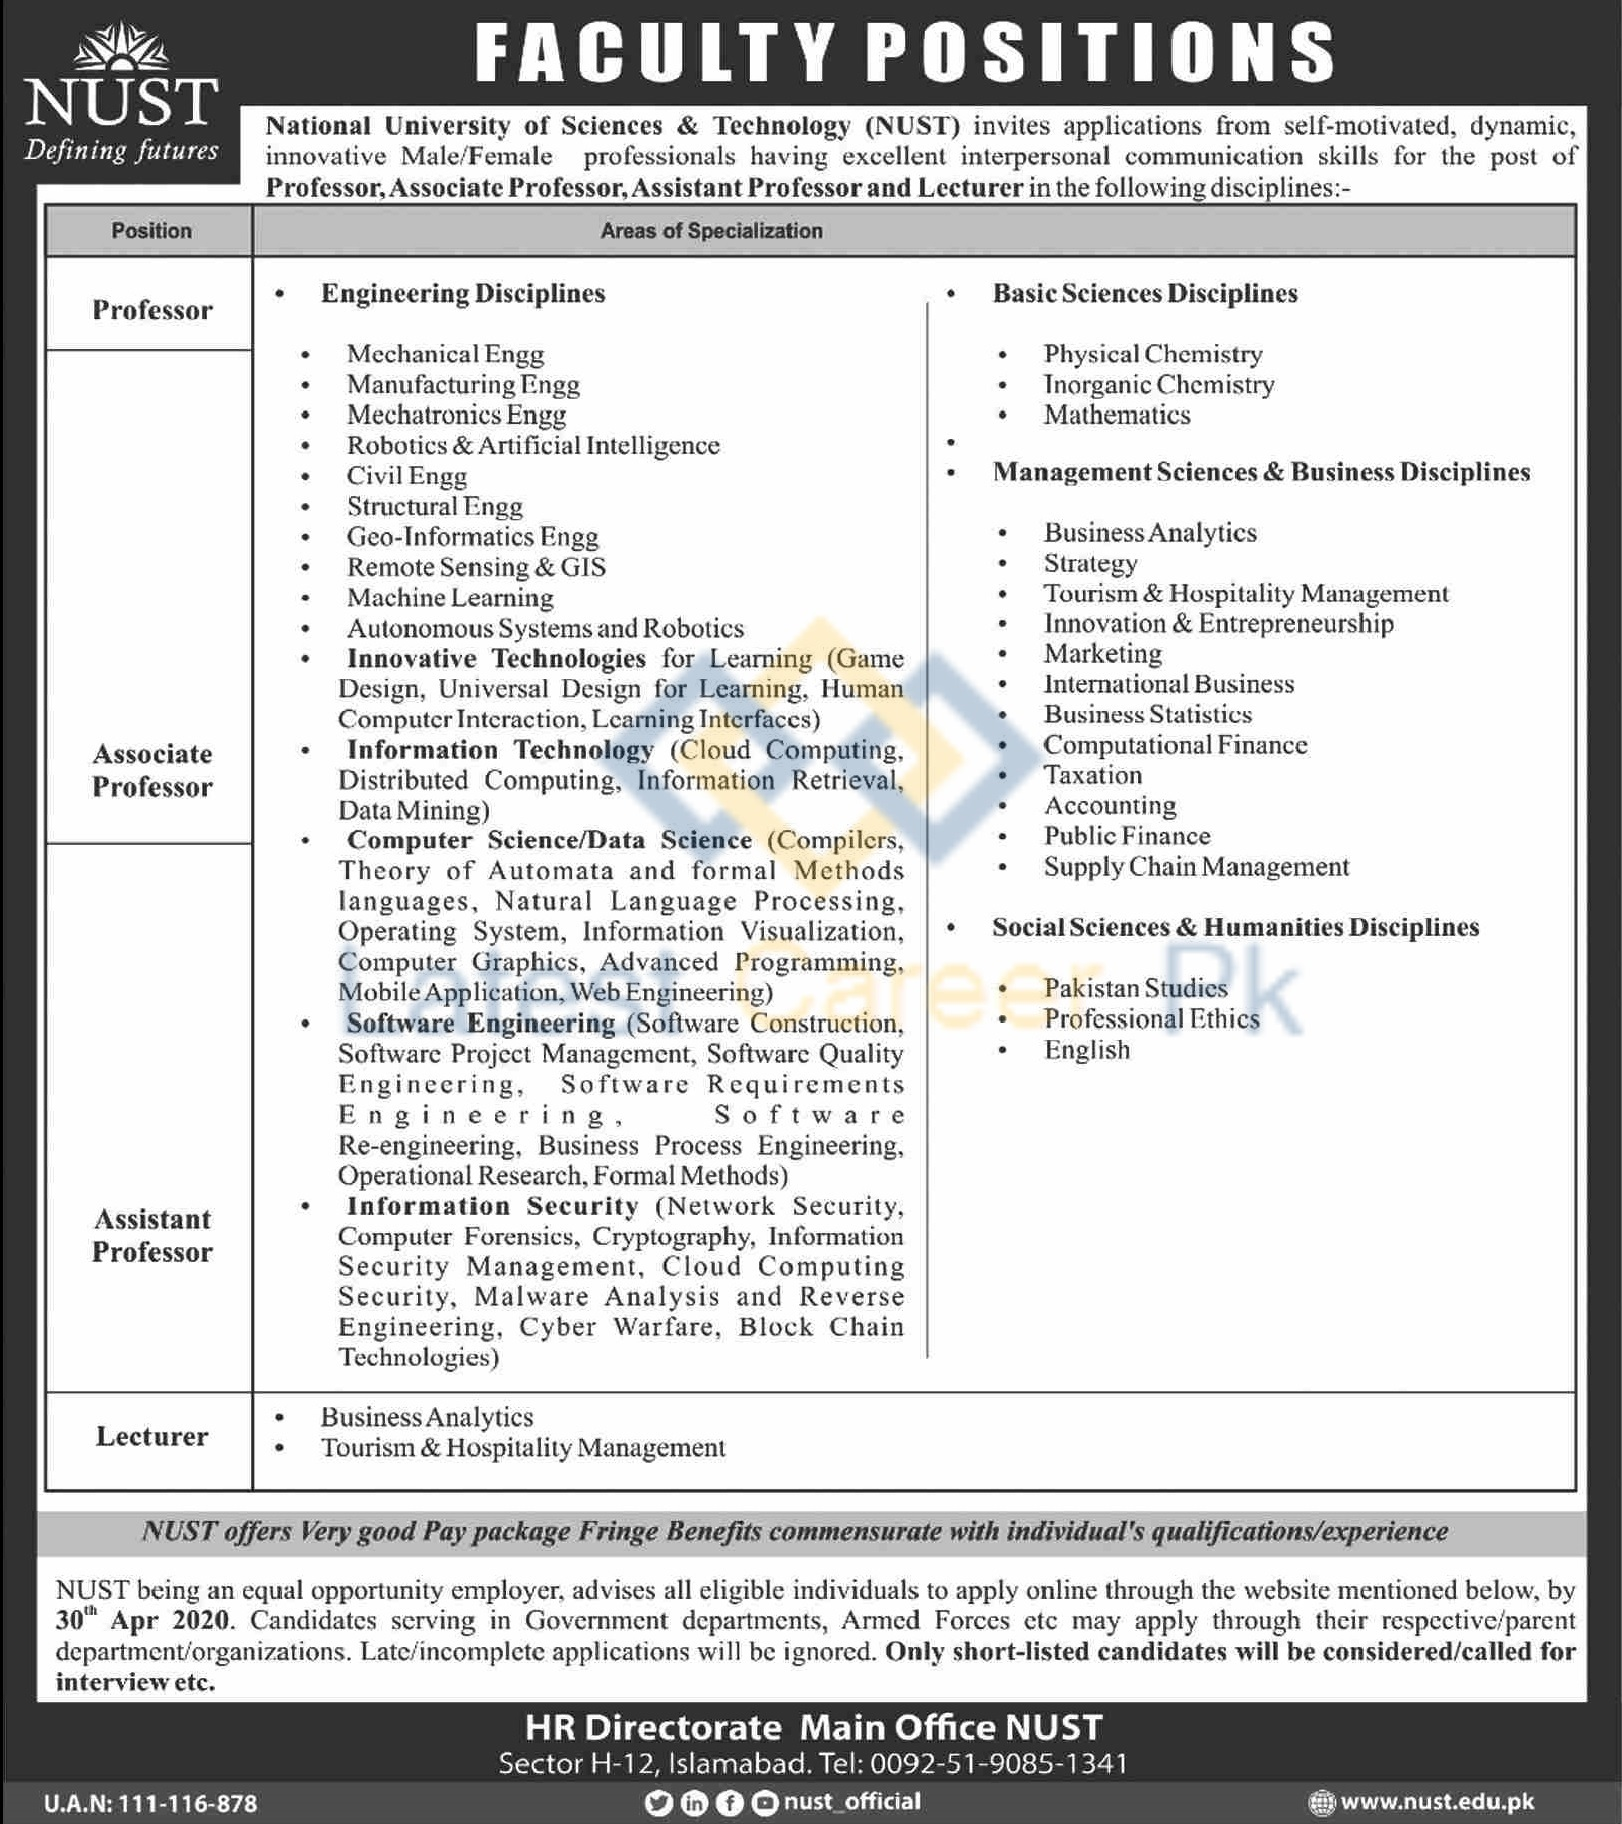 National-University-of-Sciences-and-Technology-NUST-Islamabad-Jobs-17-Apr-2020